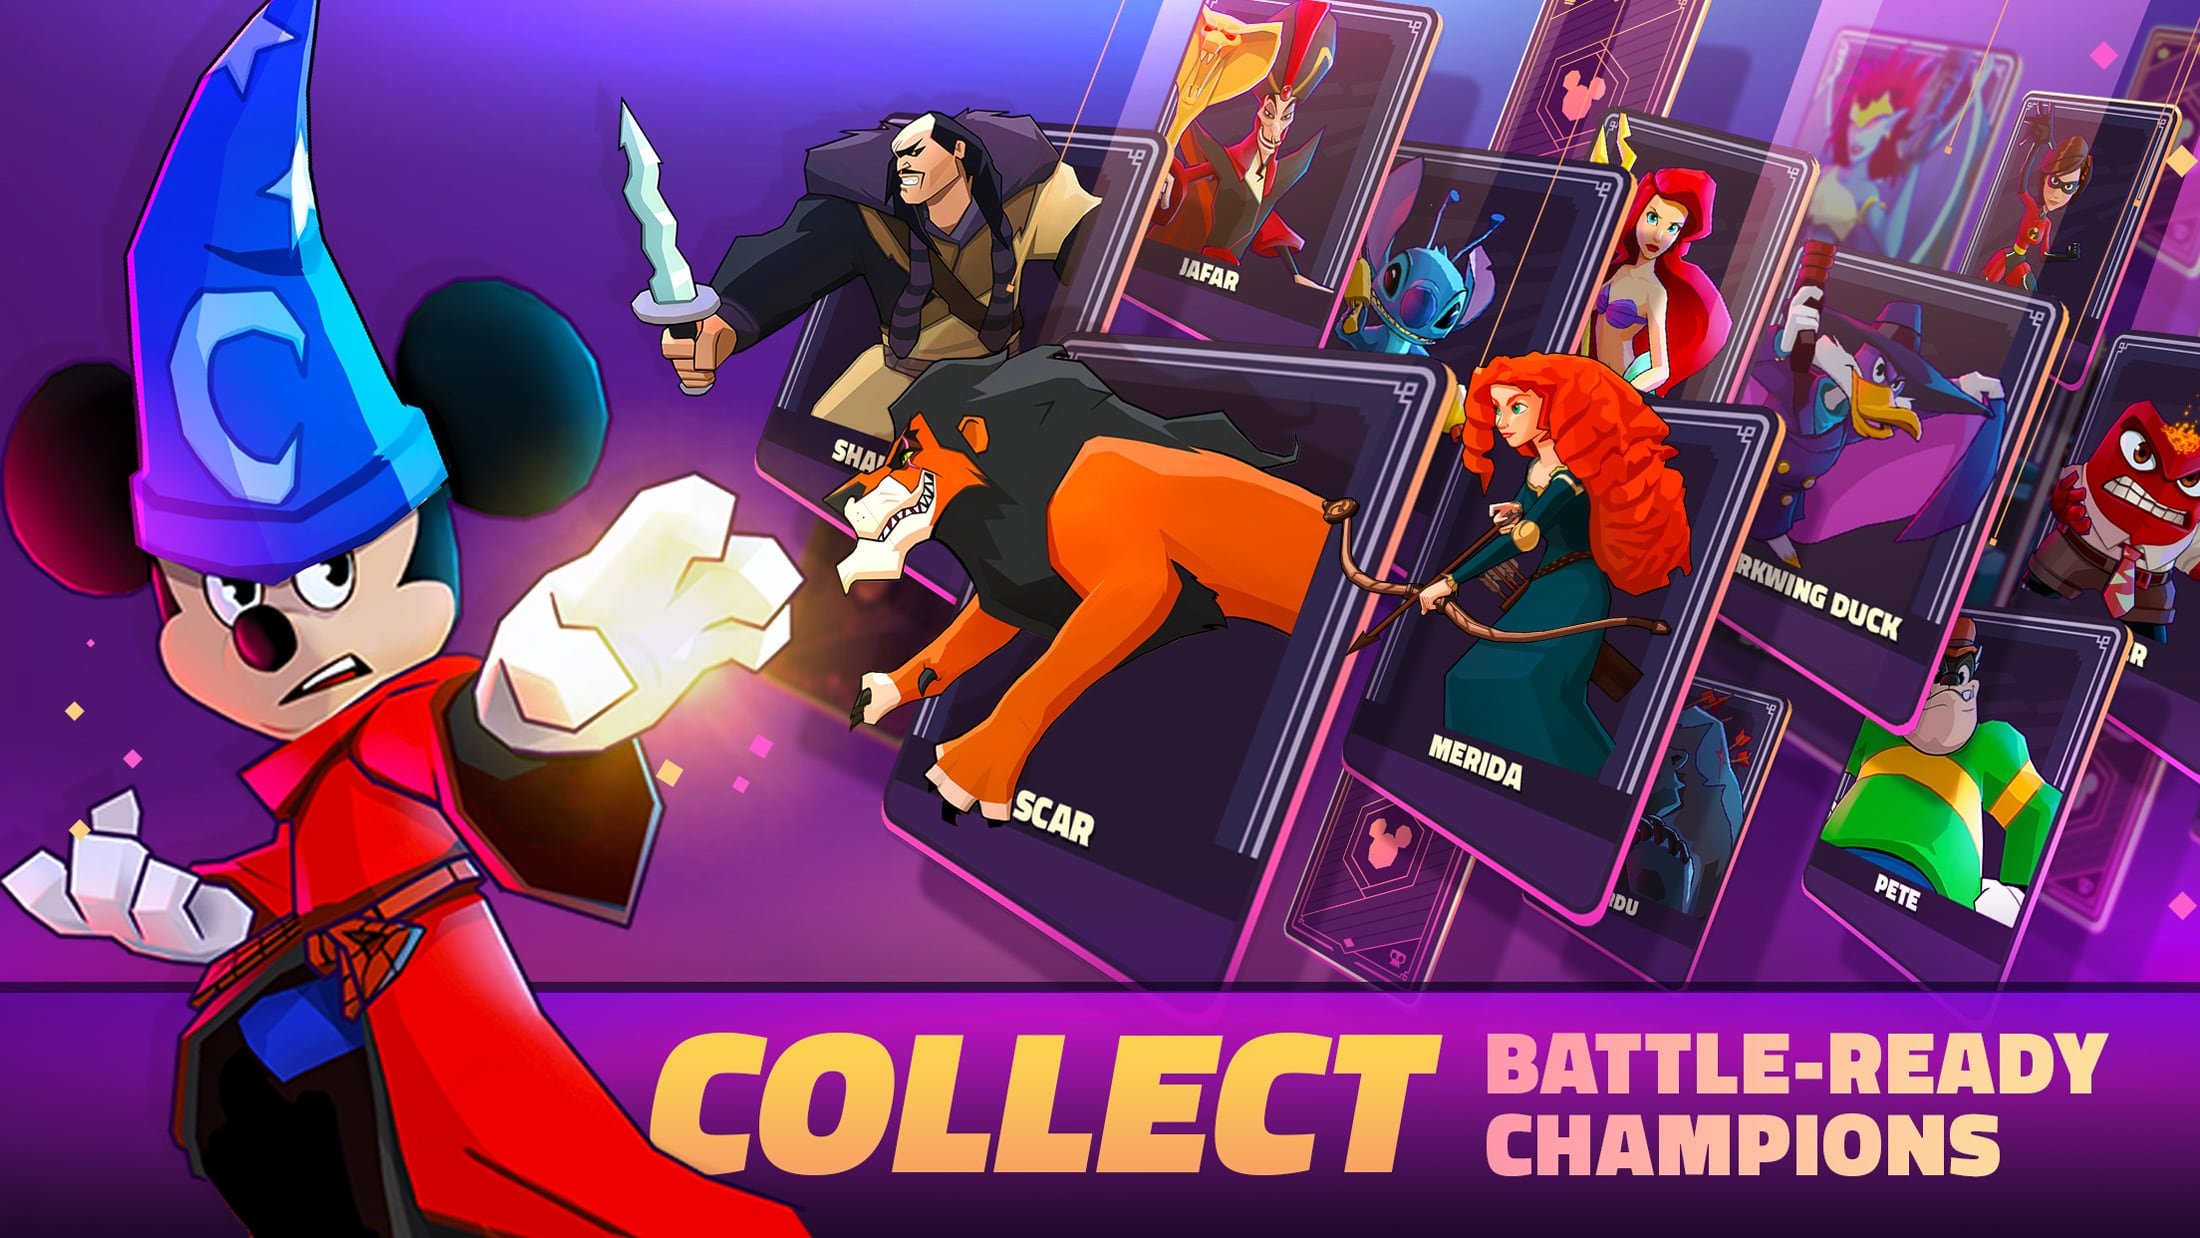 Collect battle-ready champions